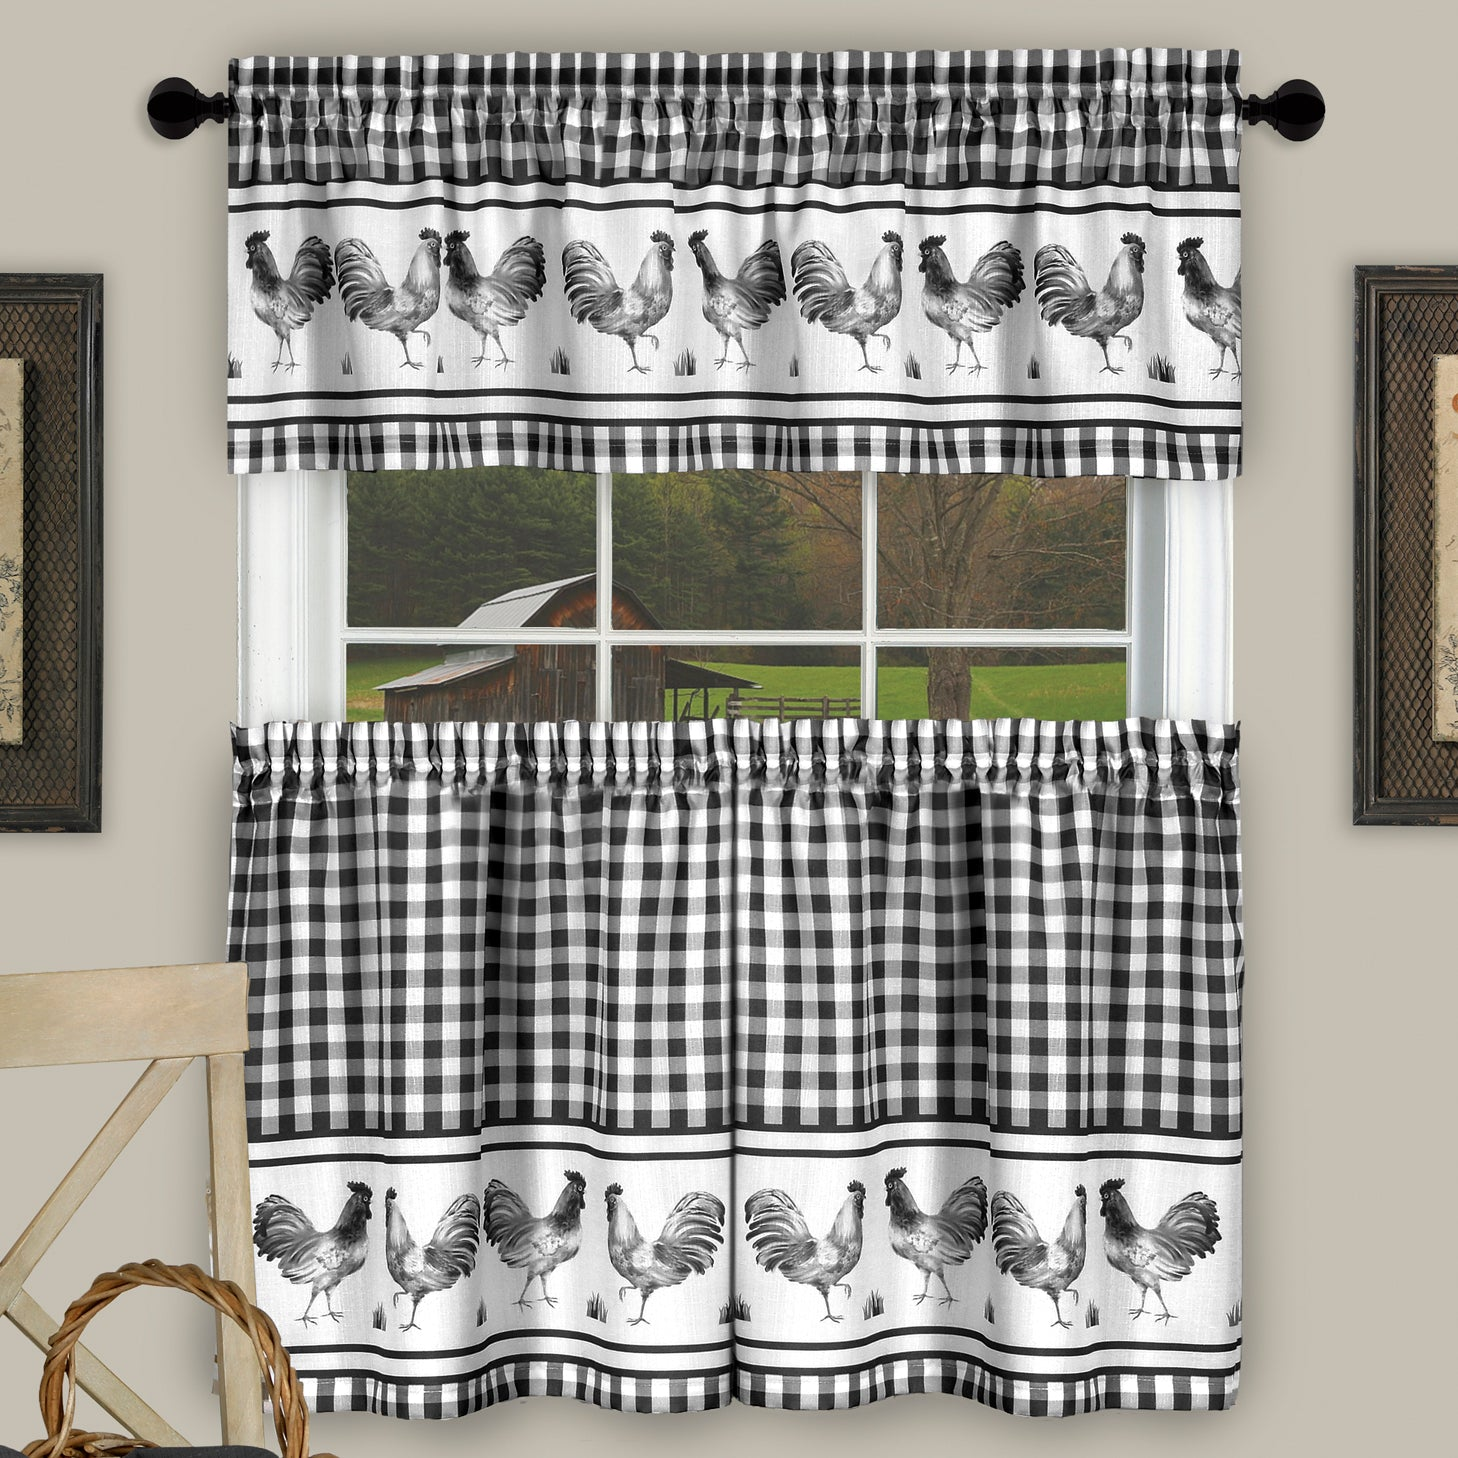 Black Rooster Curtains